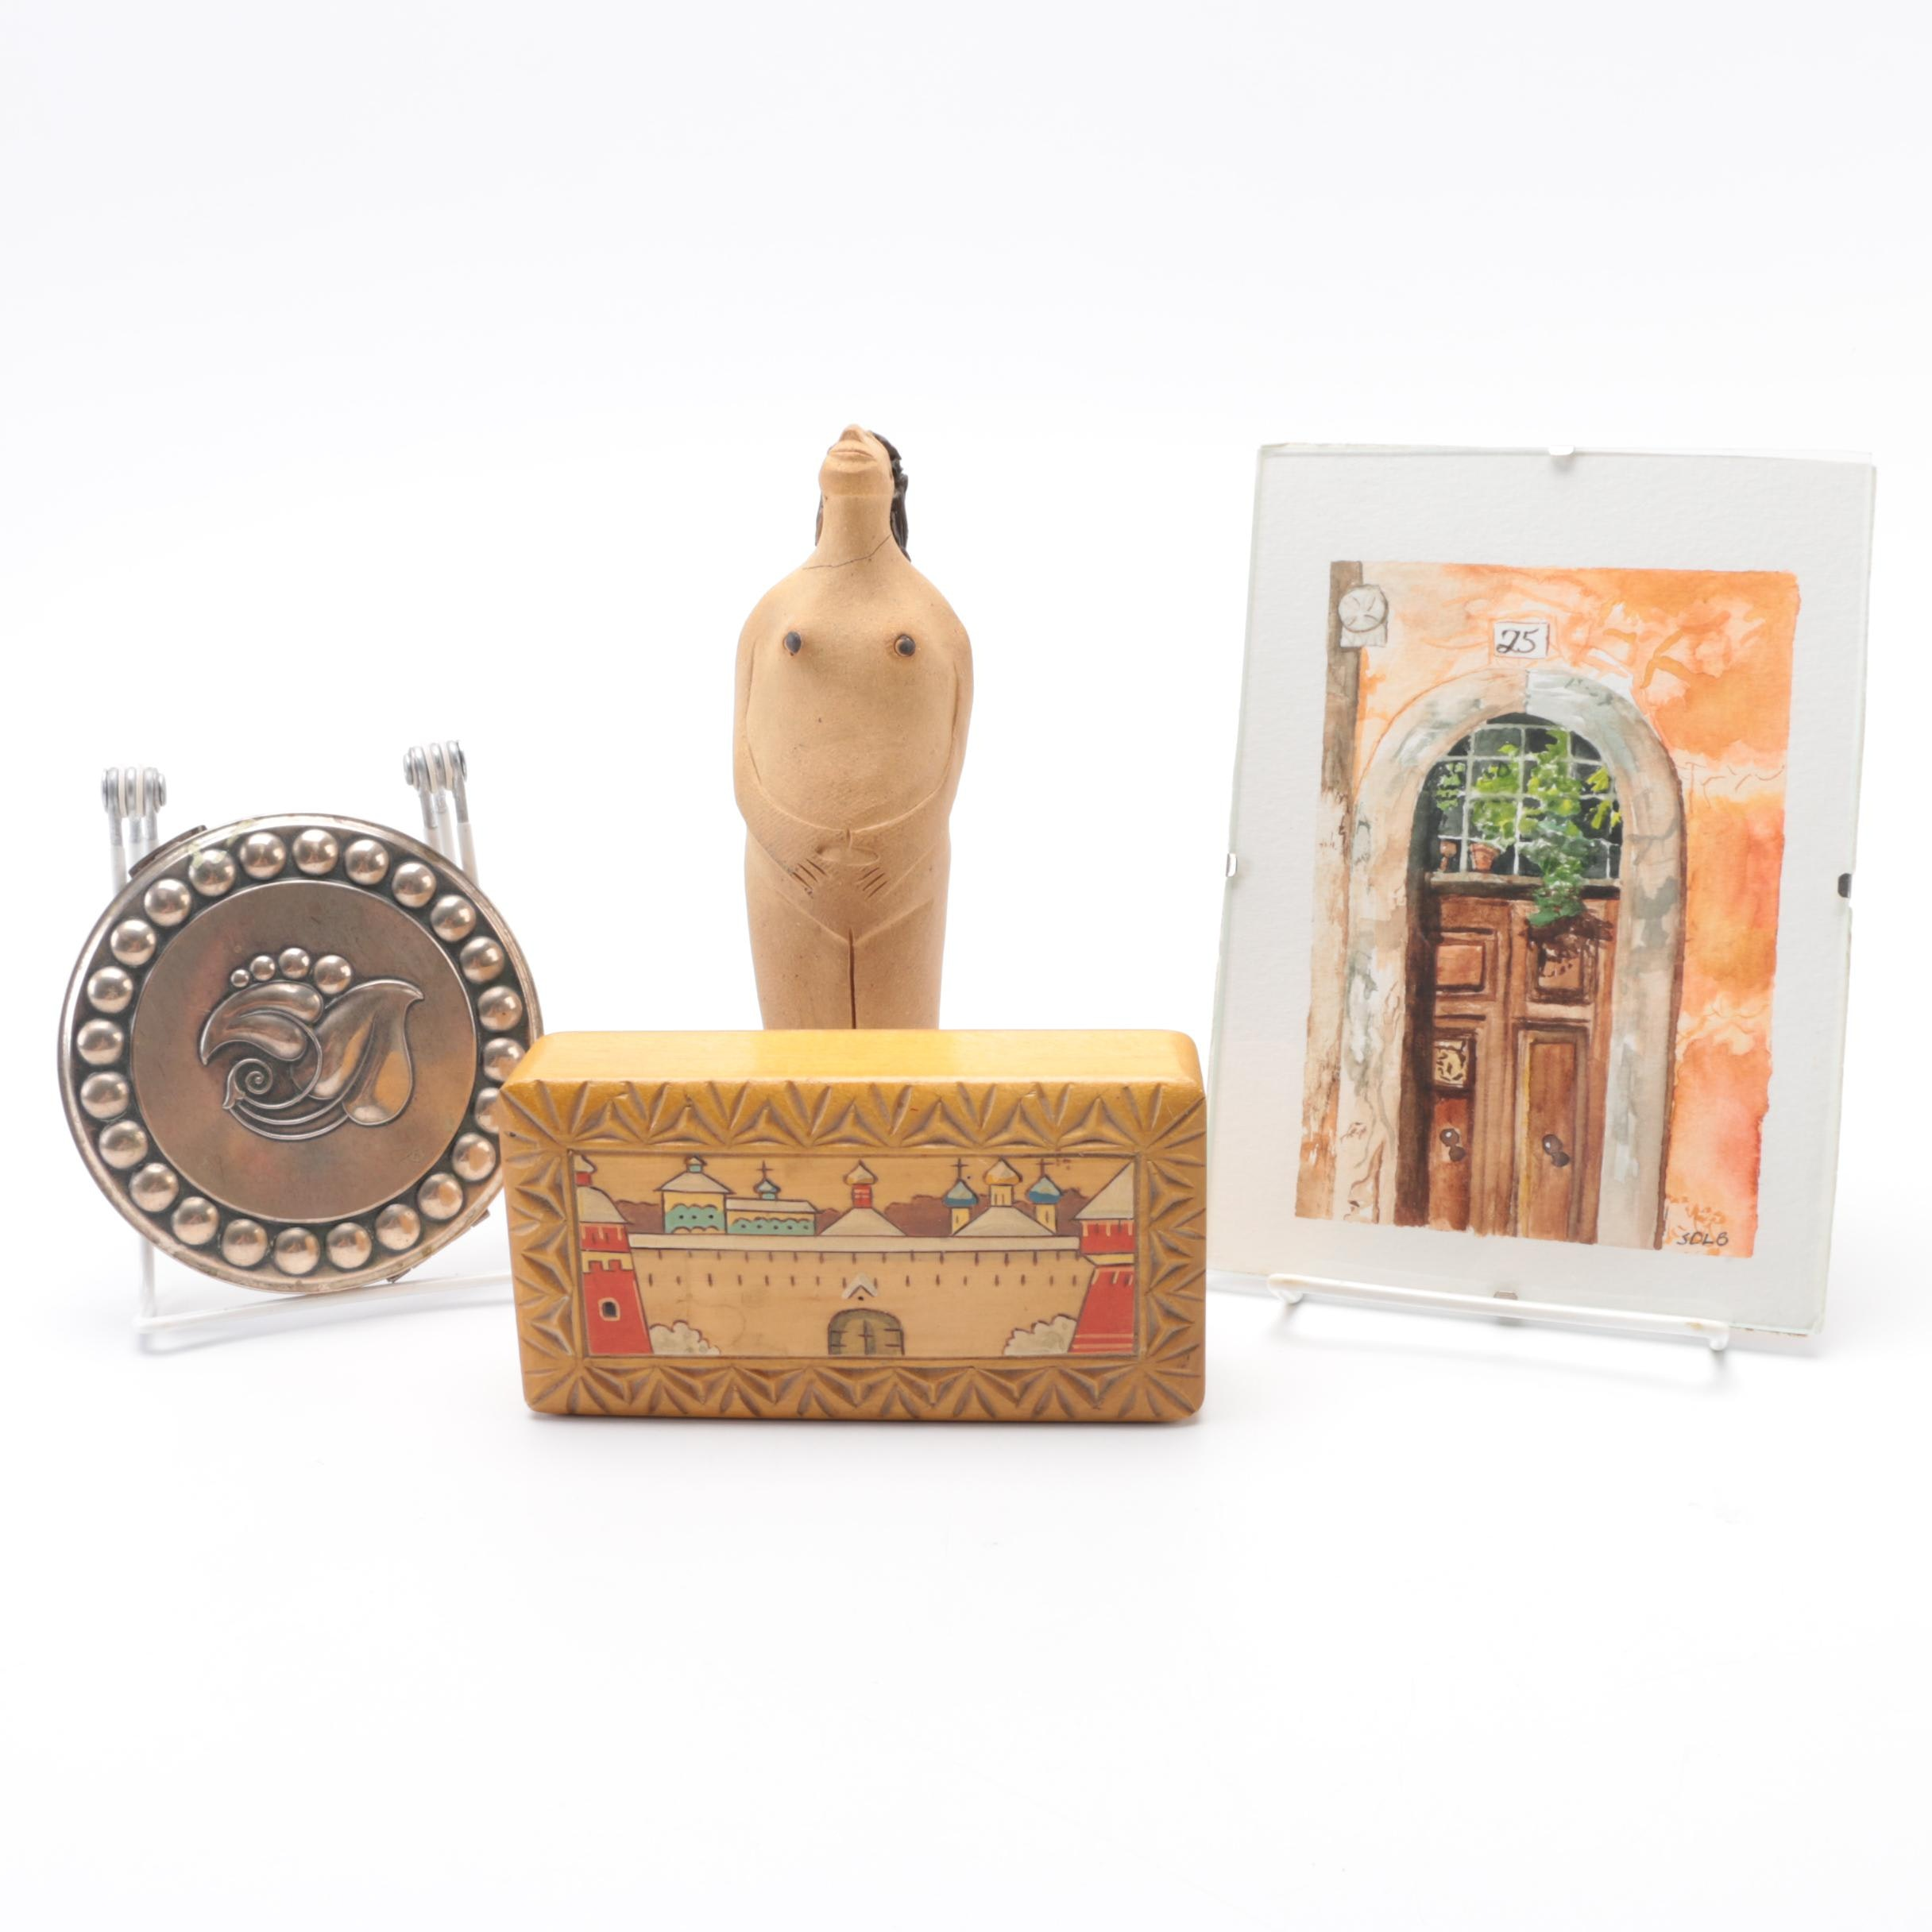 Eclectic Mix of Decorative Items includes Signed Watercolor